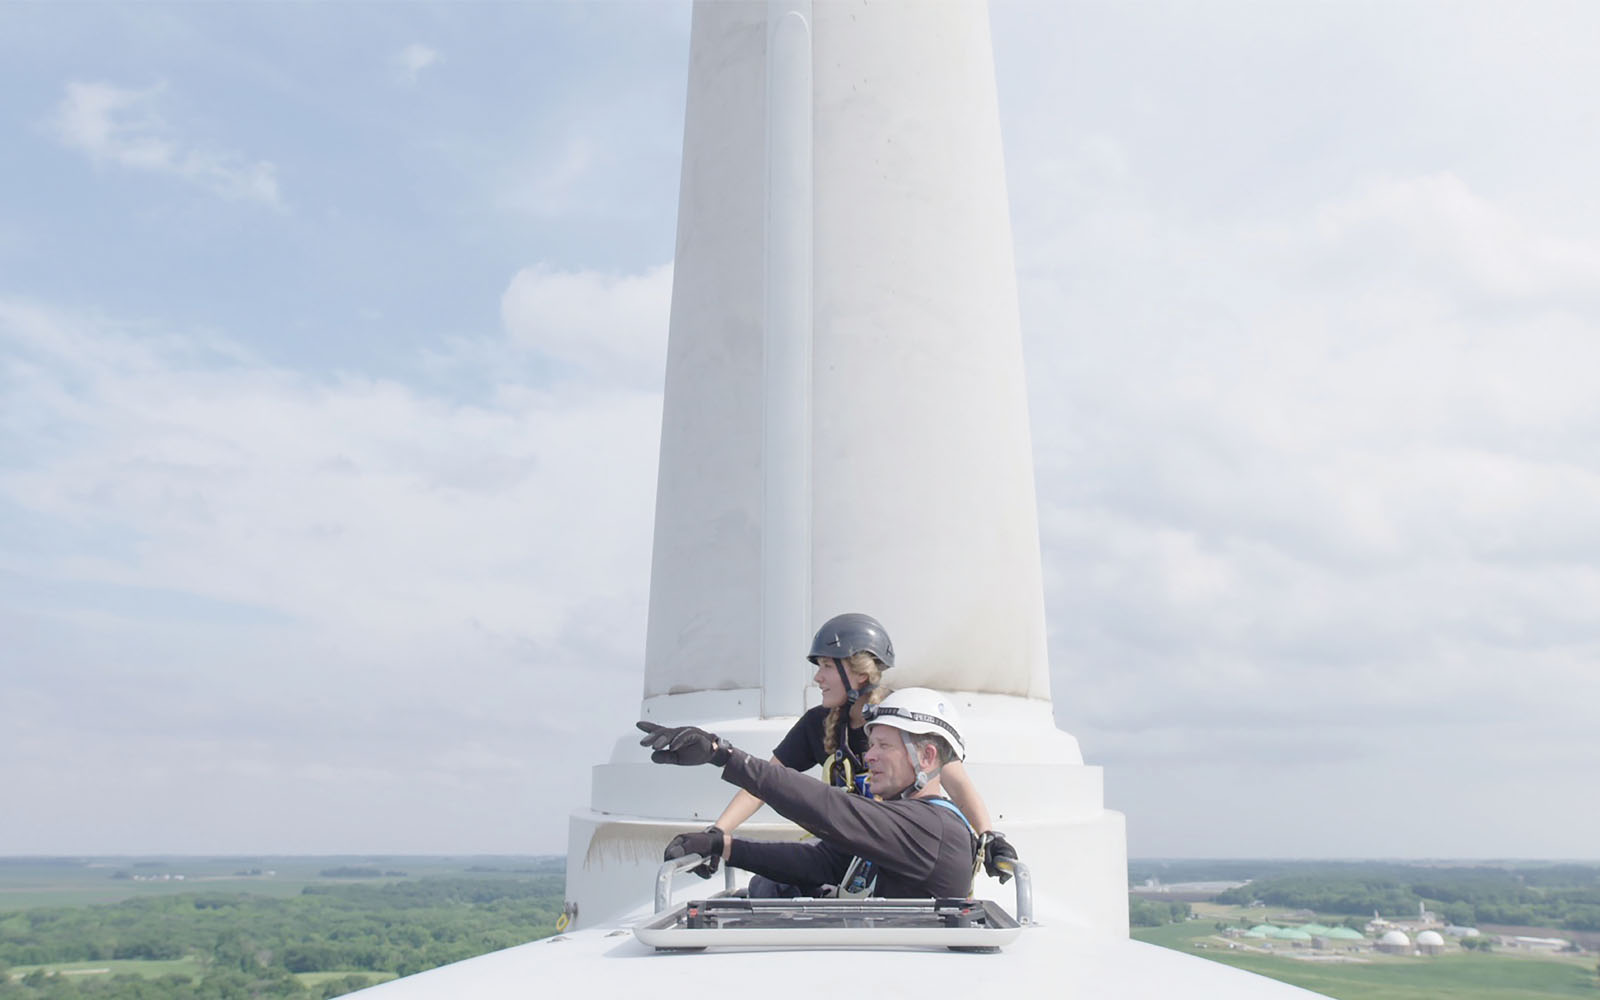 A community college student in Iowa studying wind energy, who is featured in Paris to Pittsburgh, looks out from the top of a turbine with her father.